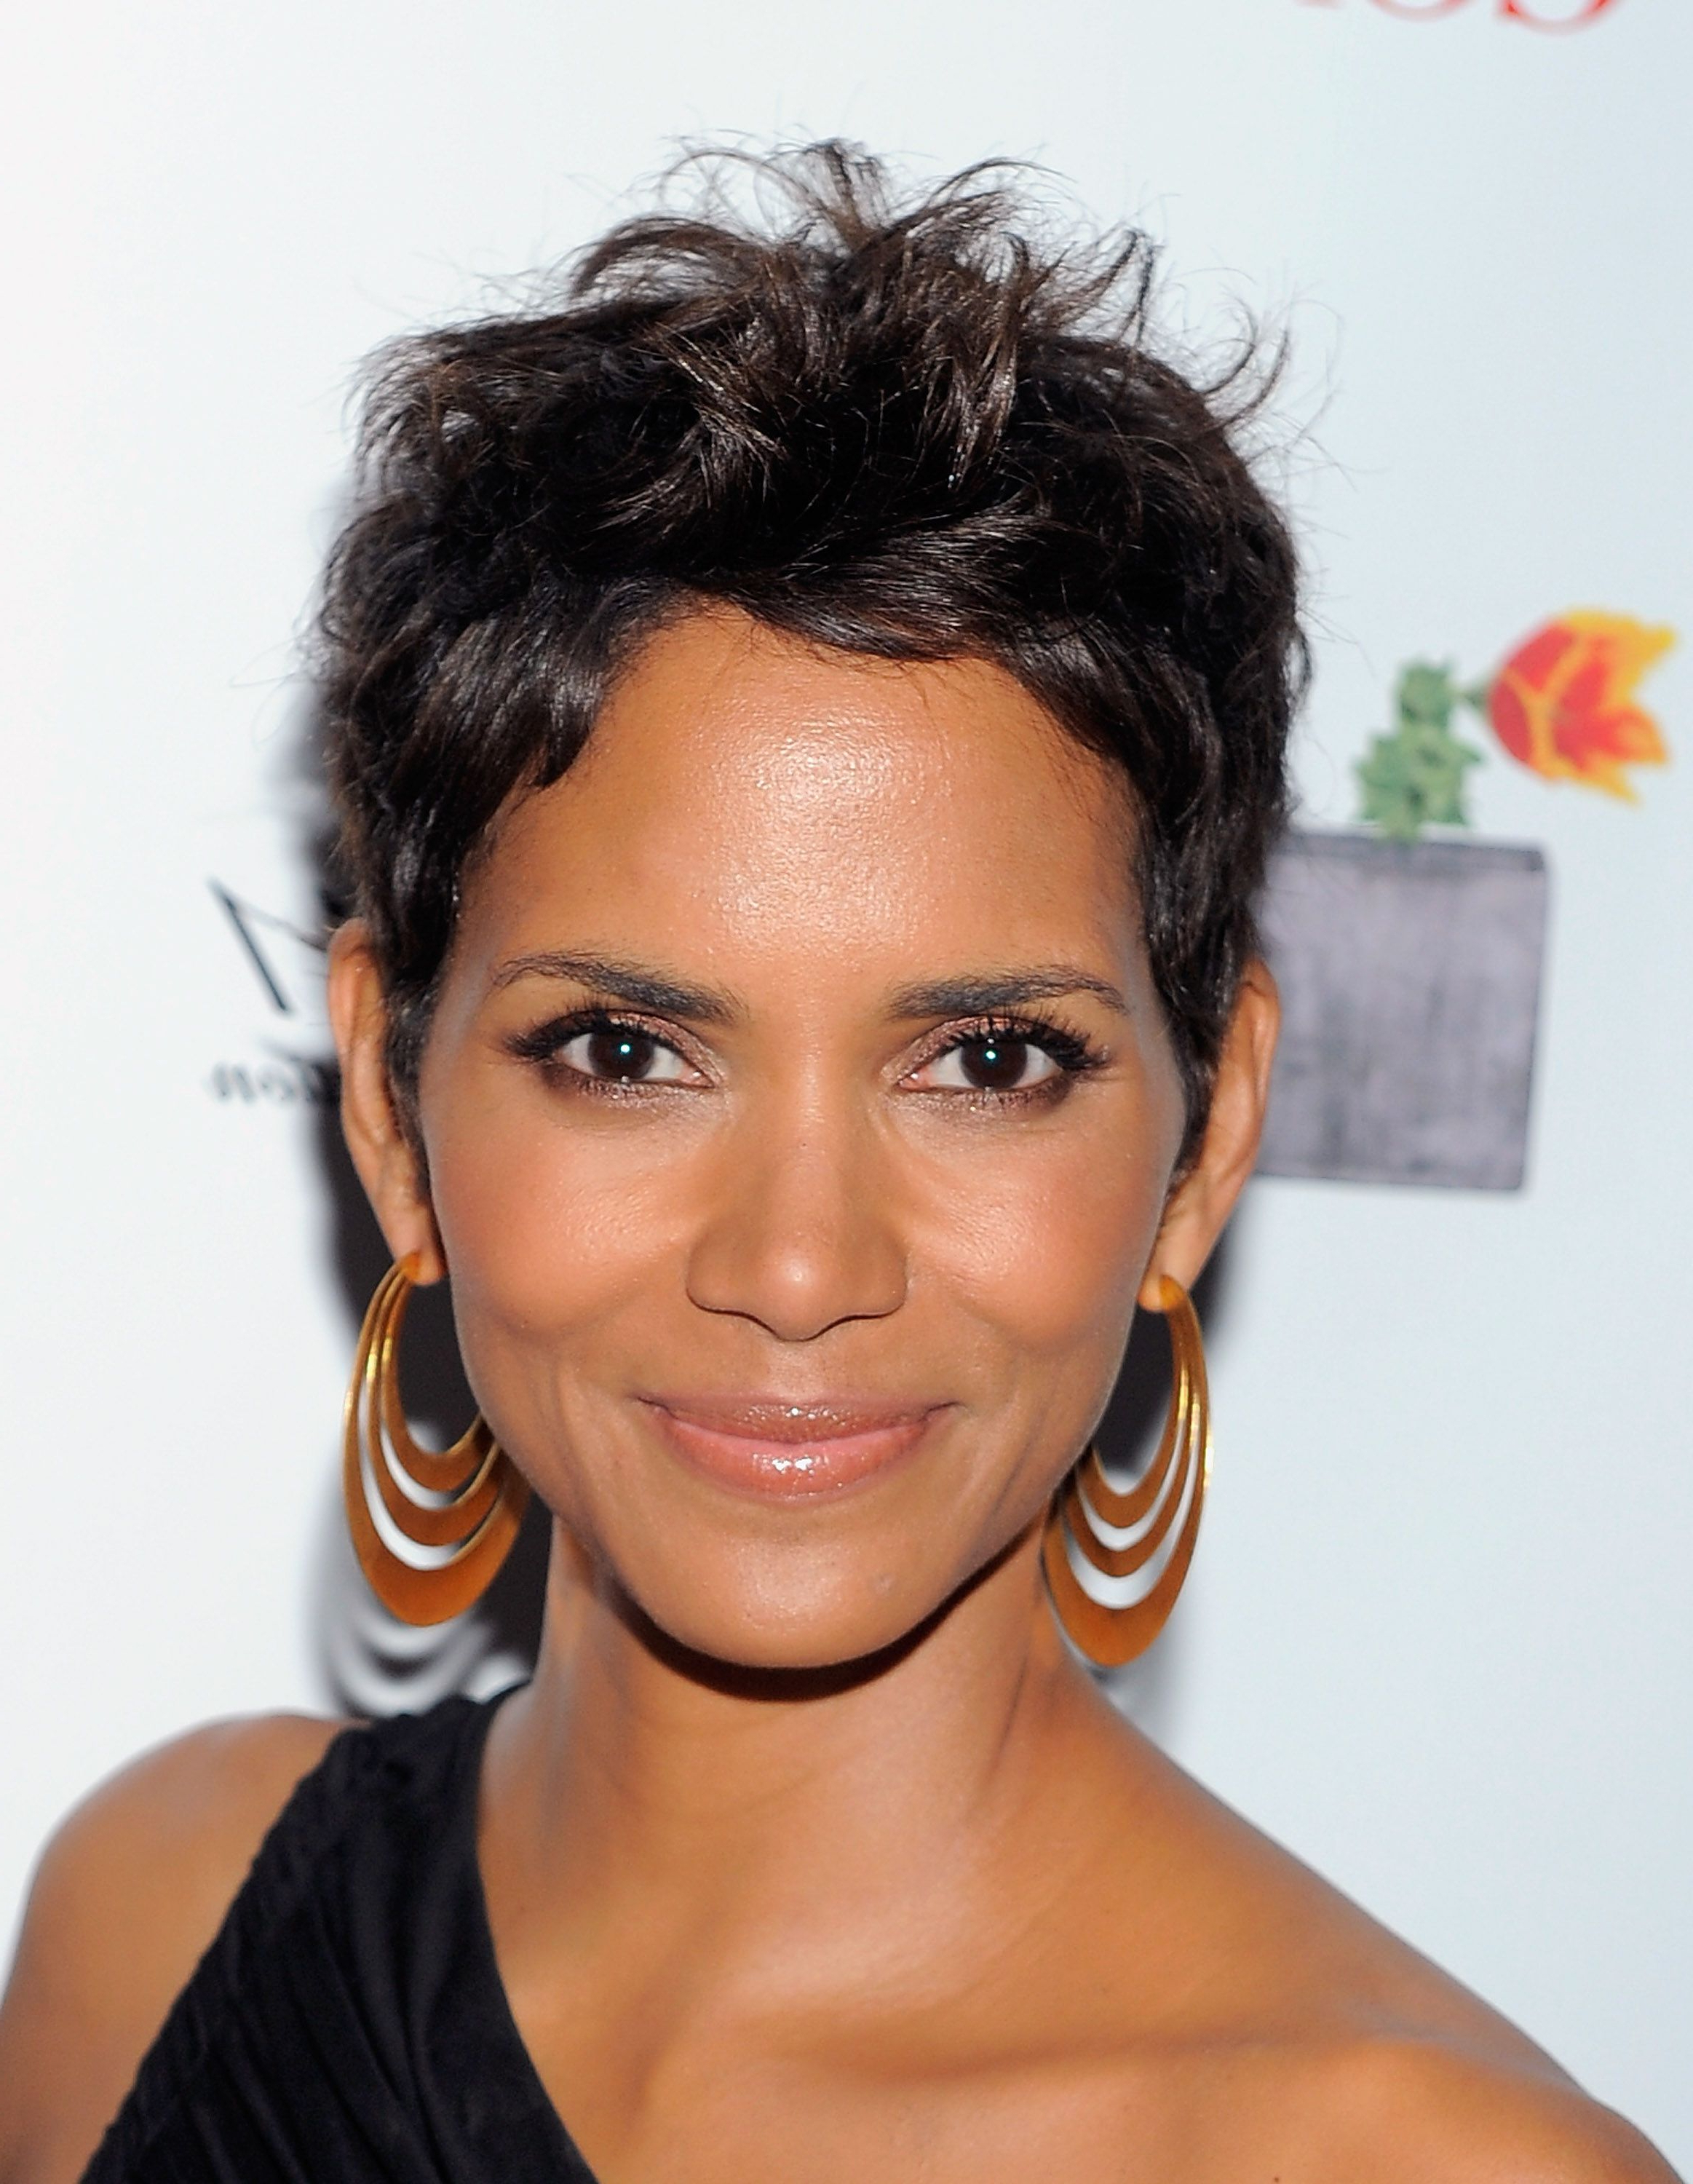 40 Best Short Pixie Cut Hairstyles 2018 – Cute Pixie Haircuts For Women Within Short Black Hairstyles With Tousled Curls (View 23 of 25)